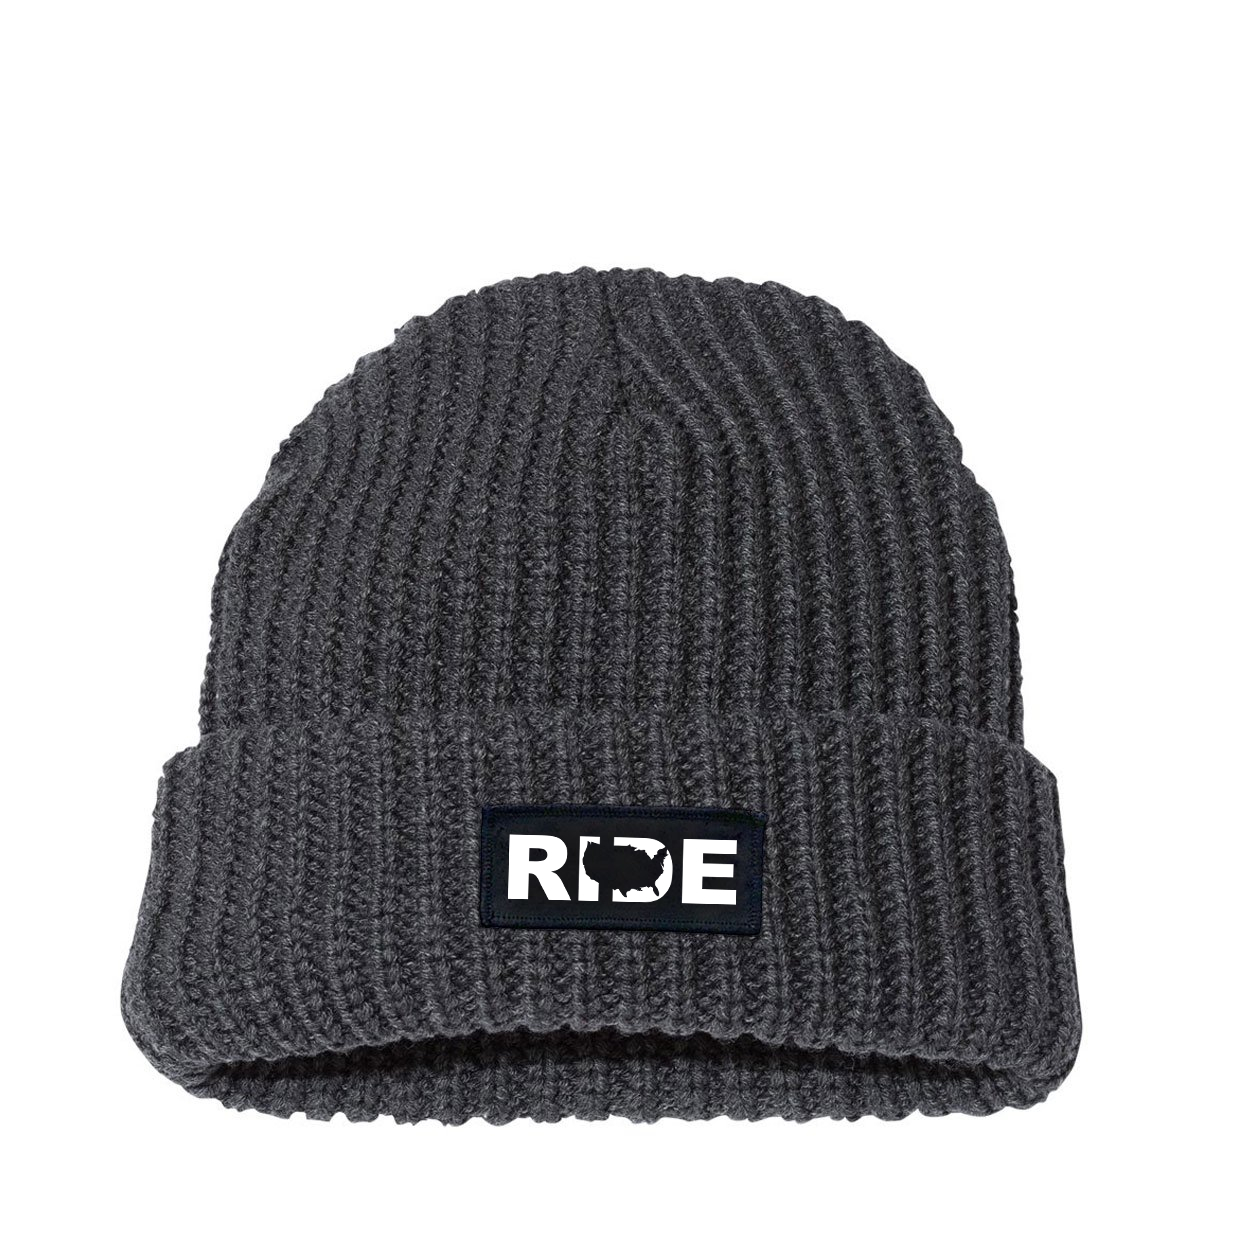 Ride United States Night Out Woven Patch Roll Up Jumbo Chunky Knit Beanie Charcoal (White Logo)